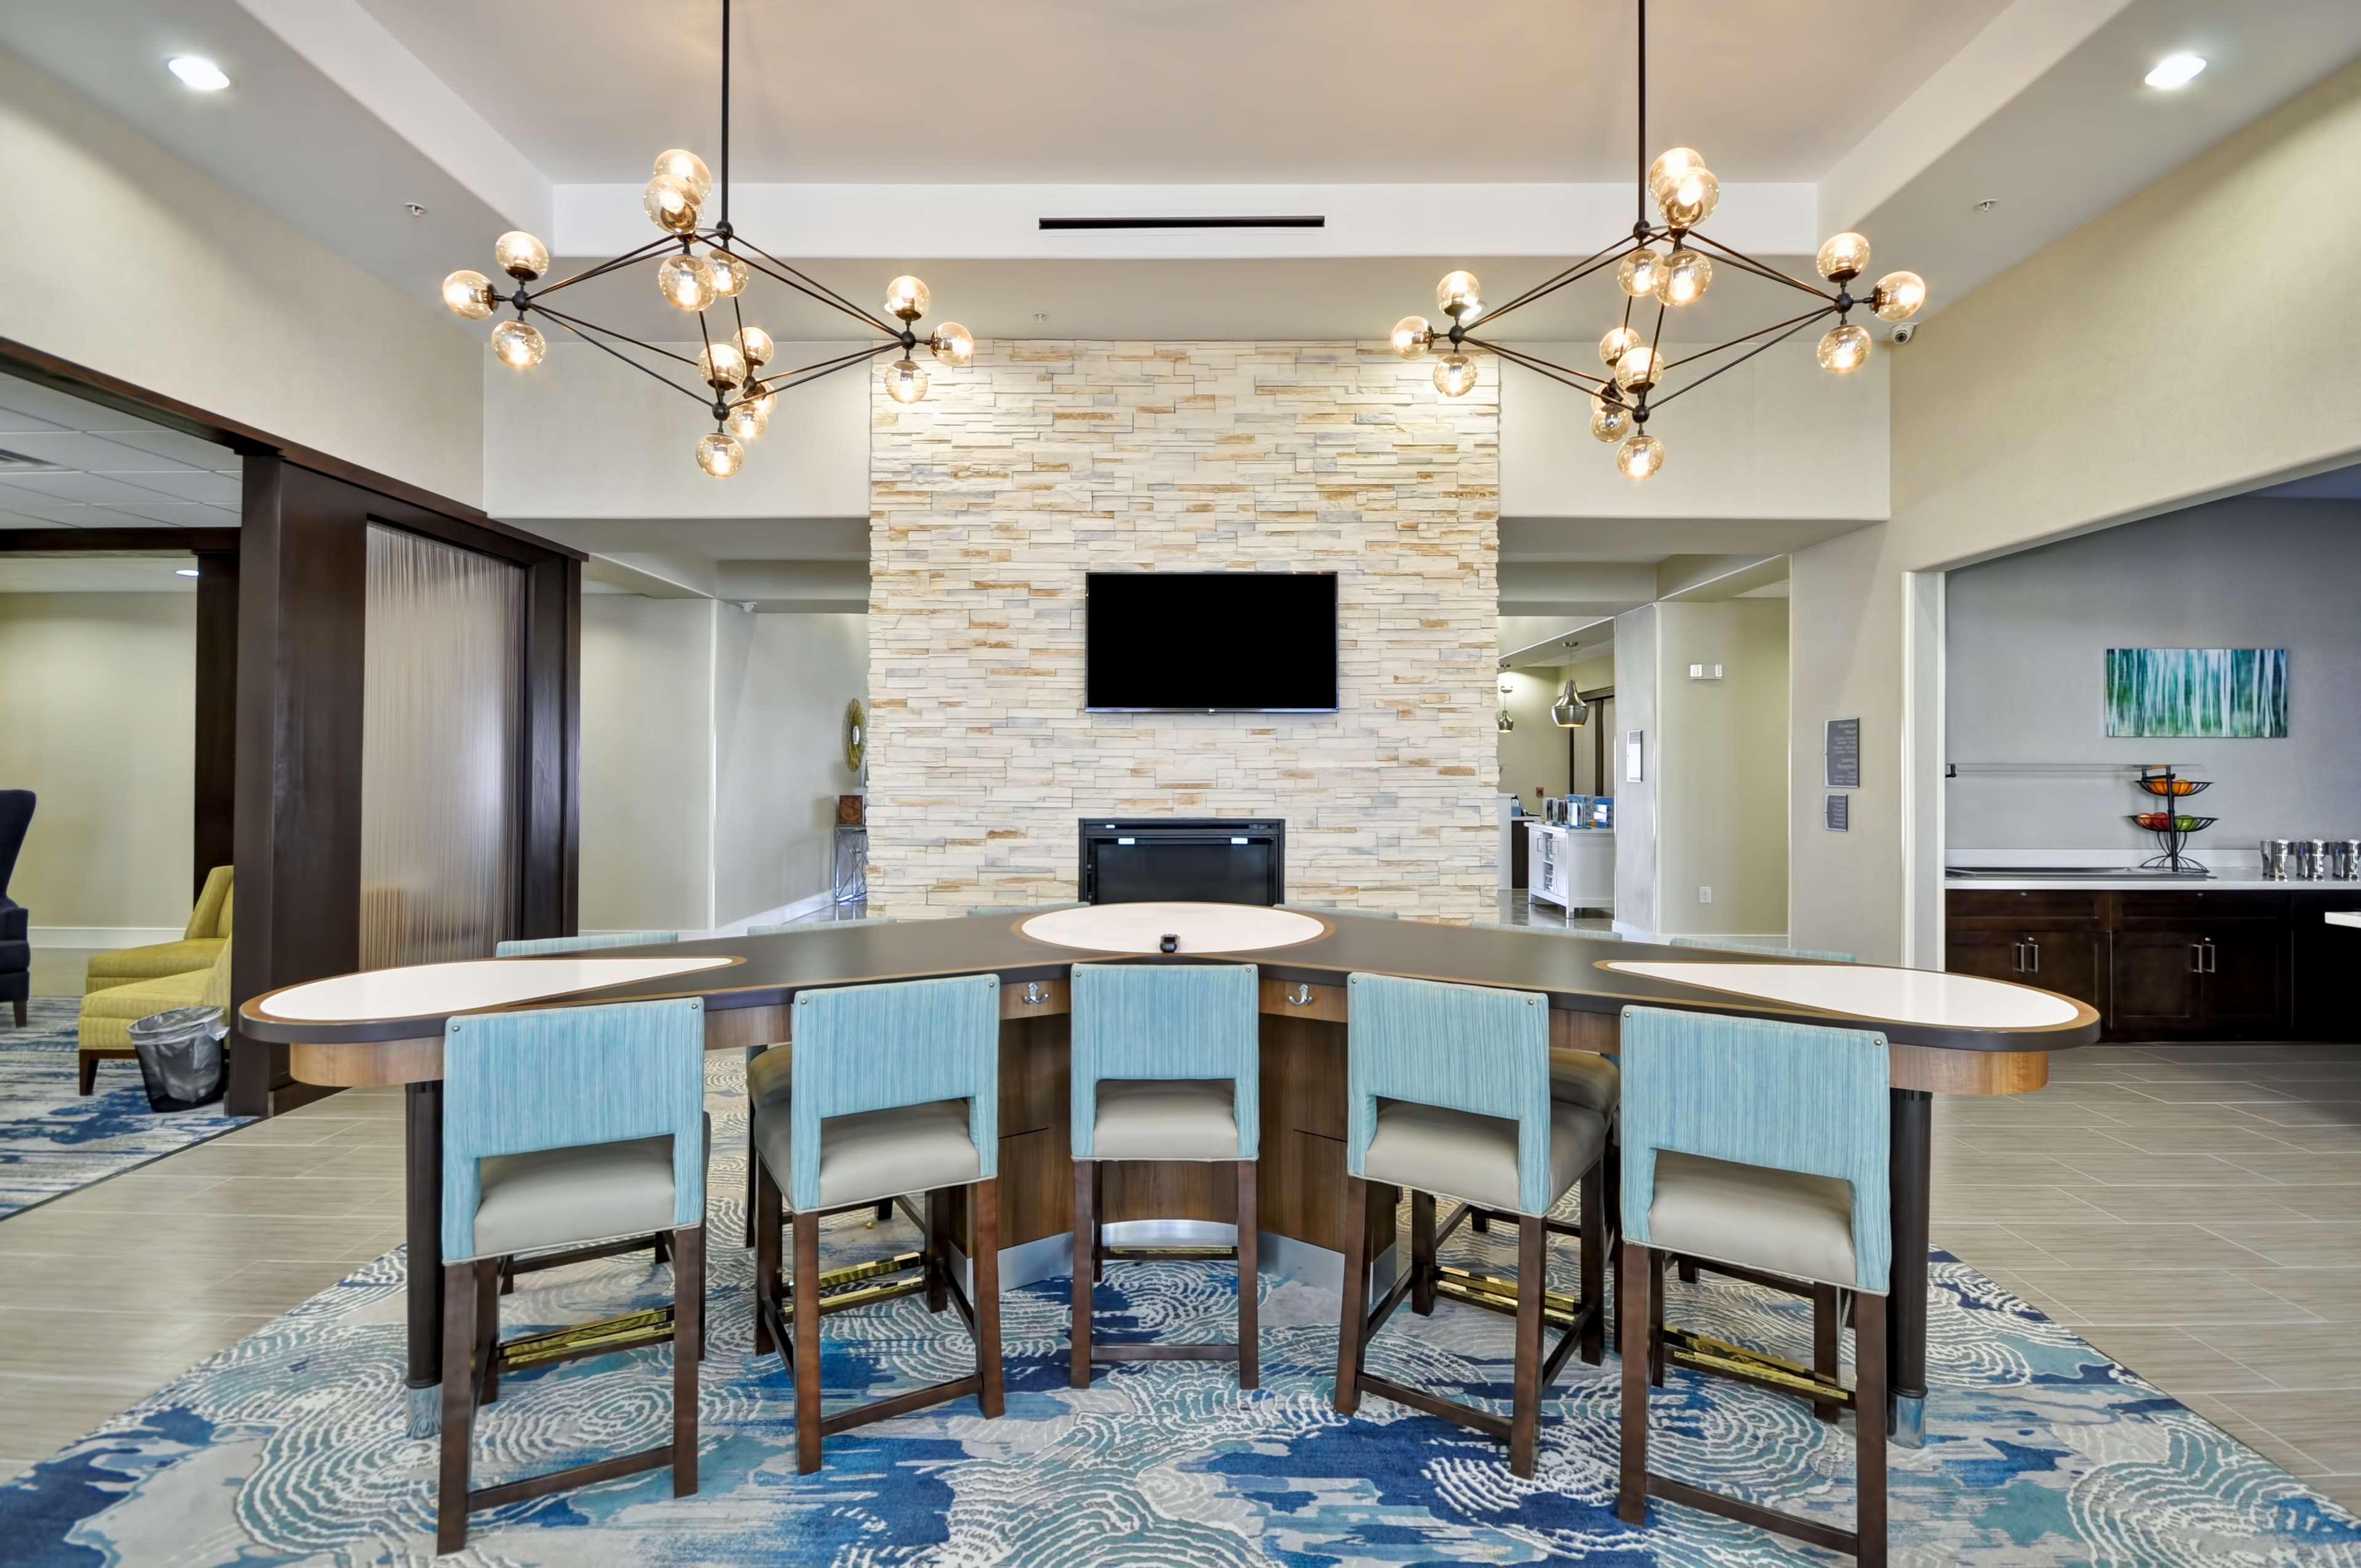 Homewood Suites by Hilton New Braunfels image 11